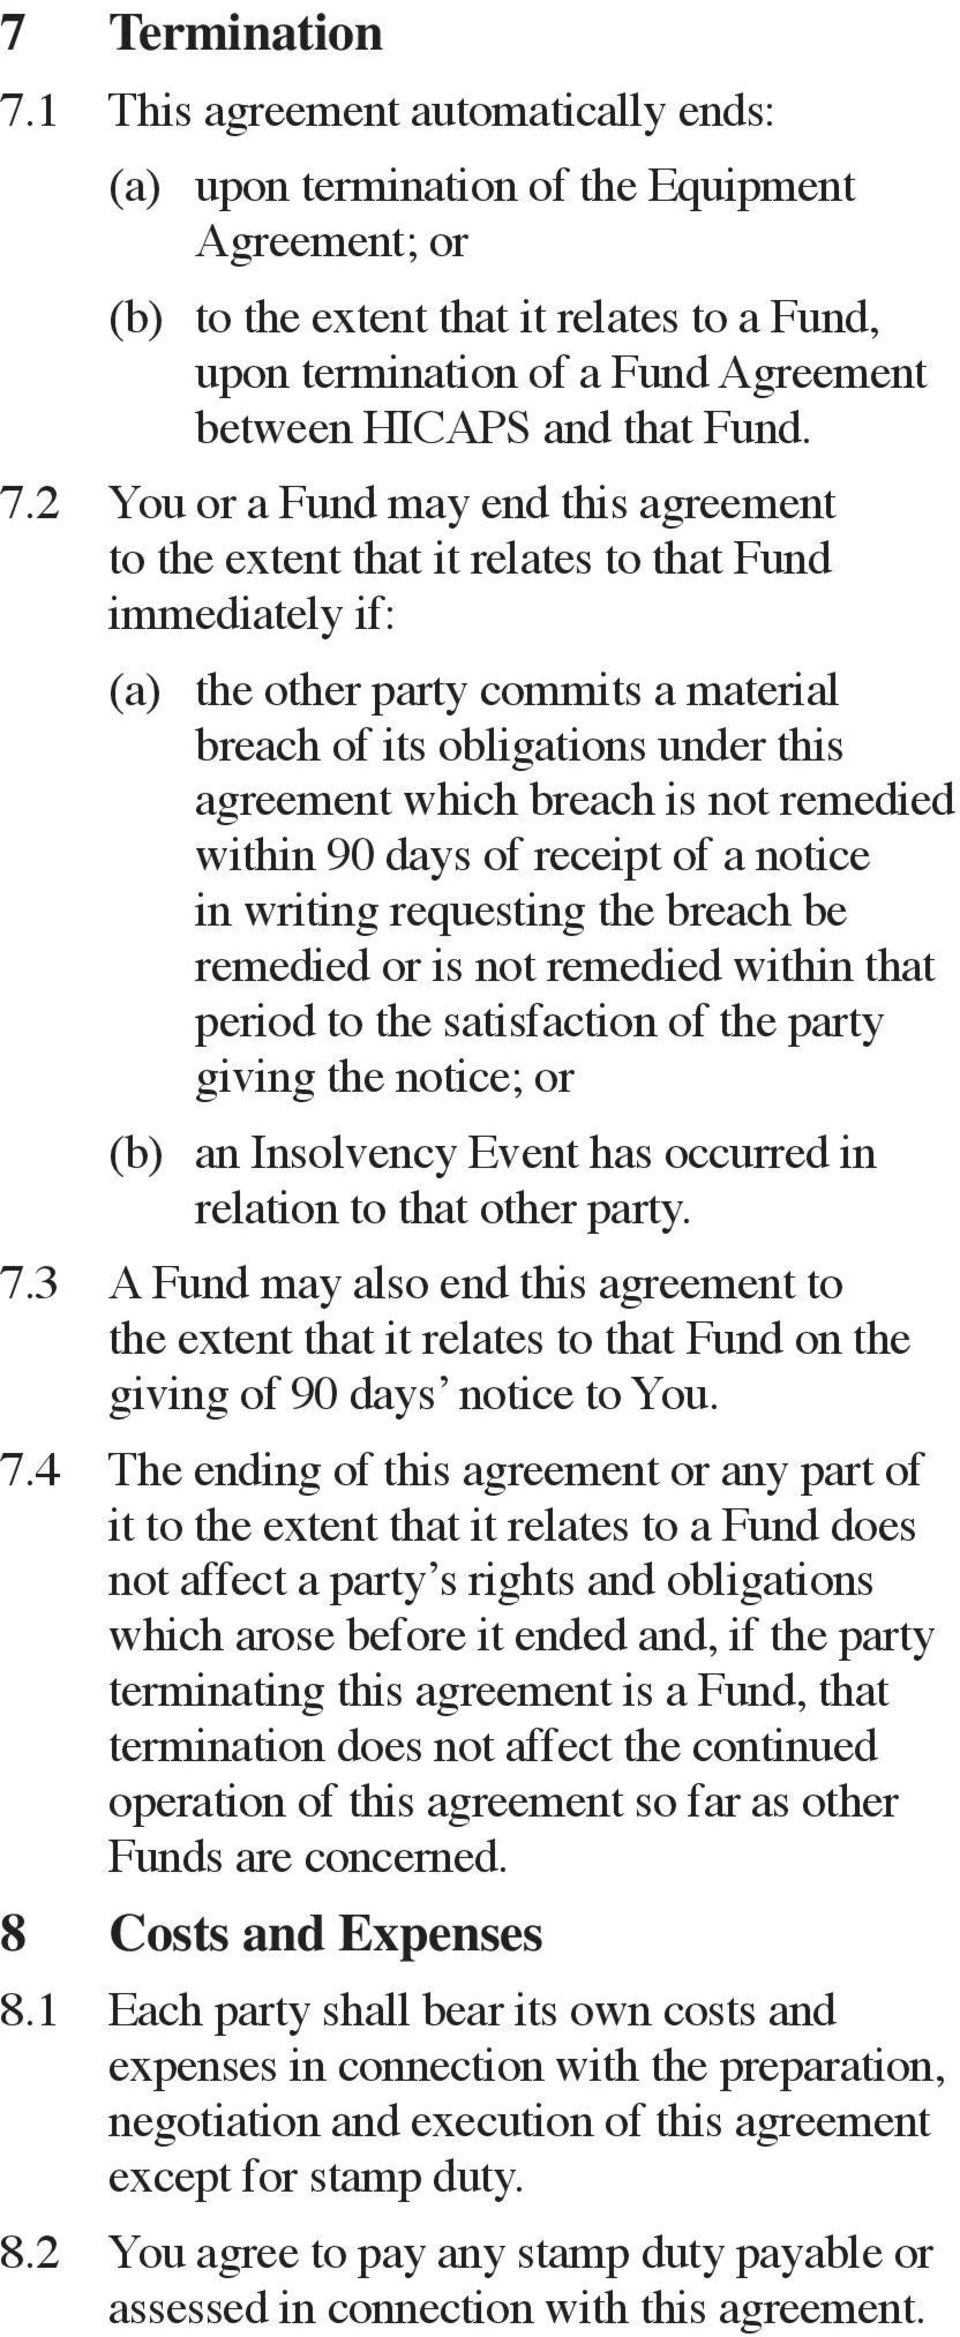 7.2 You or a Fund may end this agreement to the extent that it relates to that Fund immediately if: (a) the other party commits a material breach of its obligations under this agreement which breach